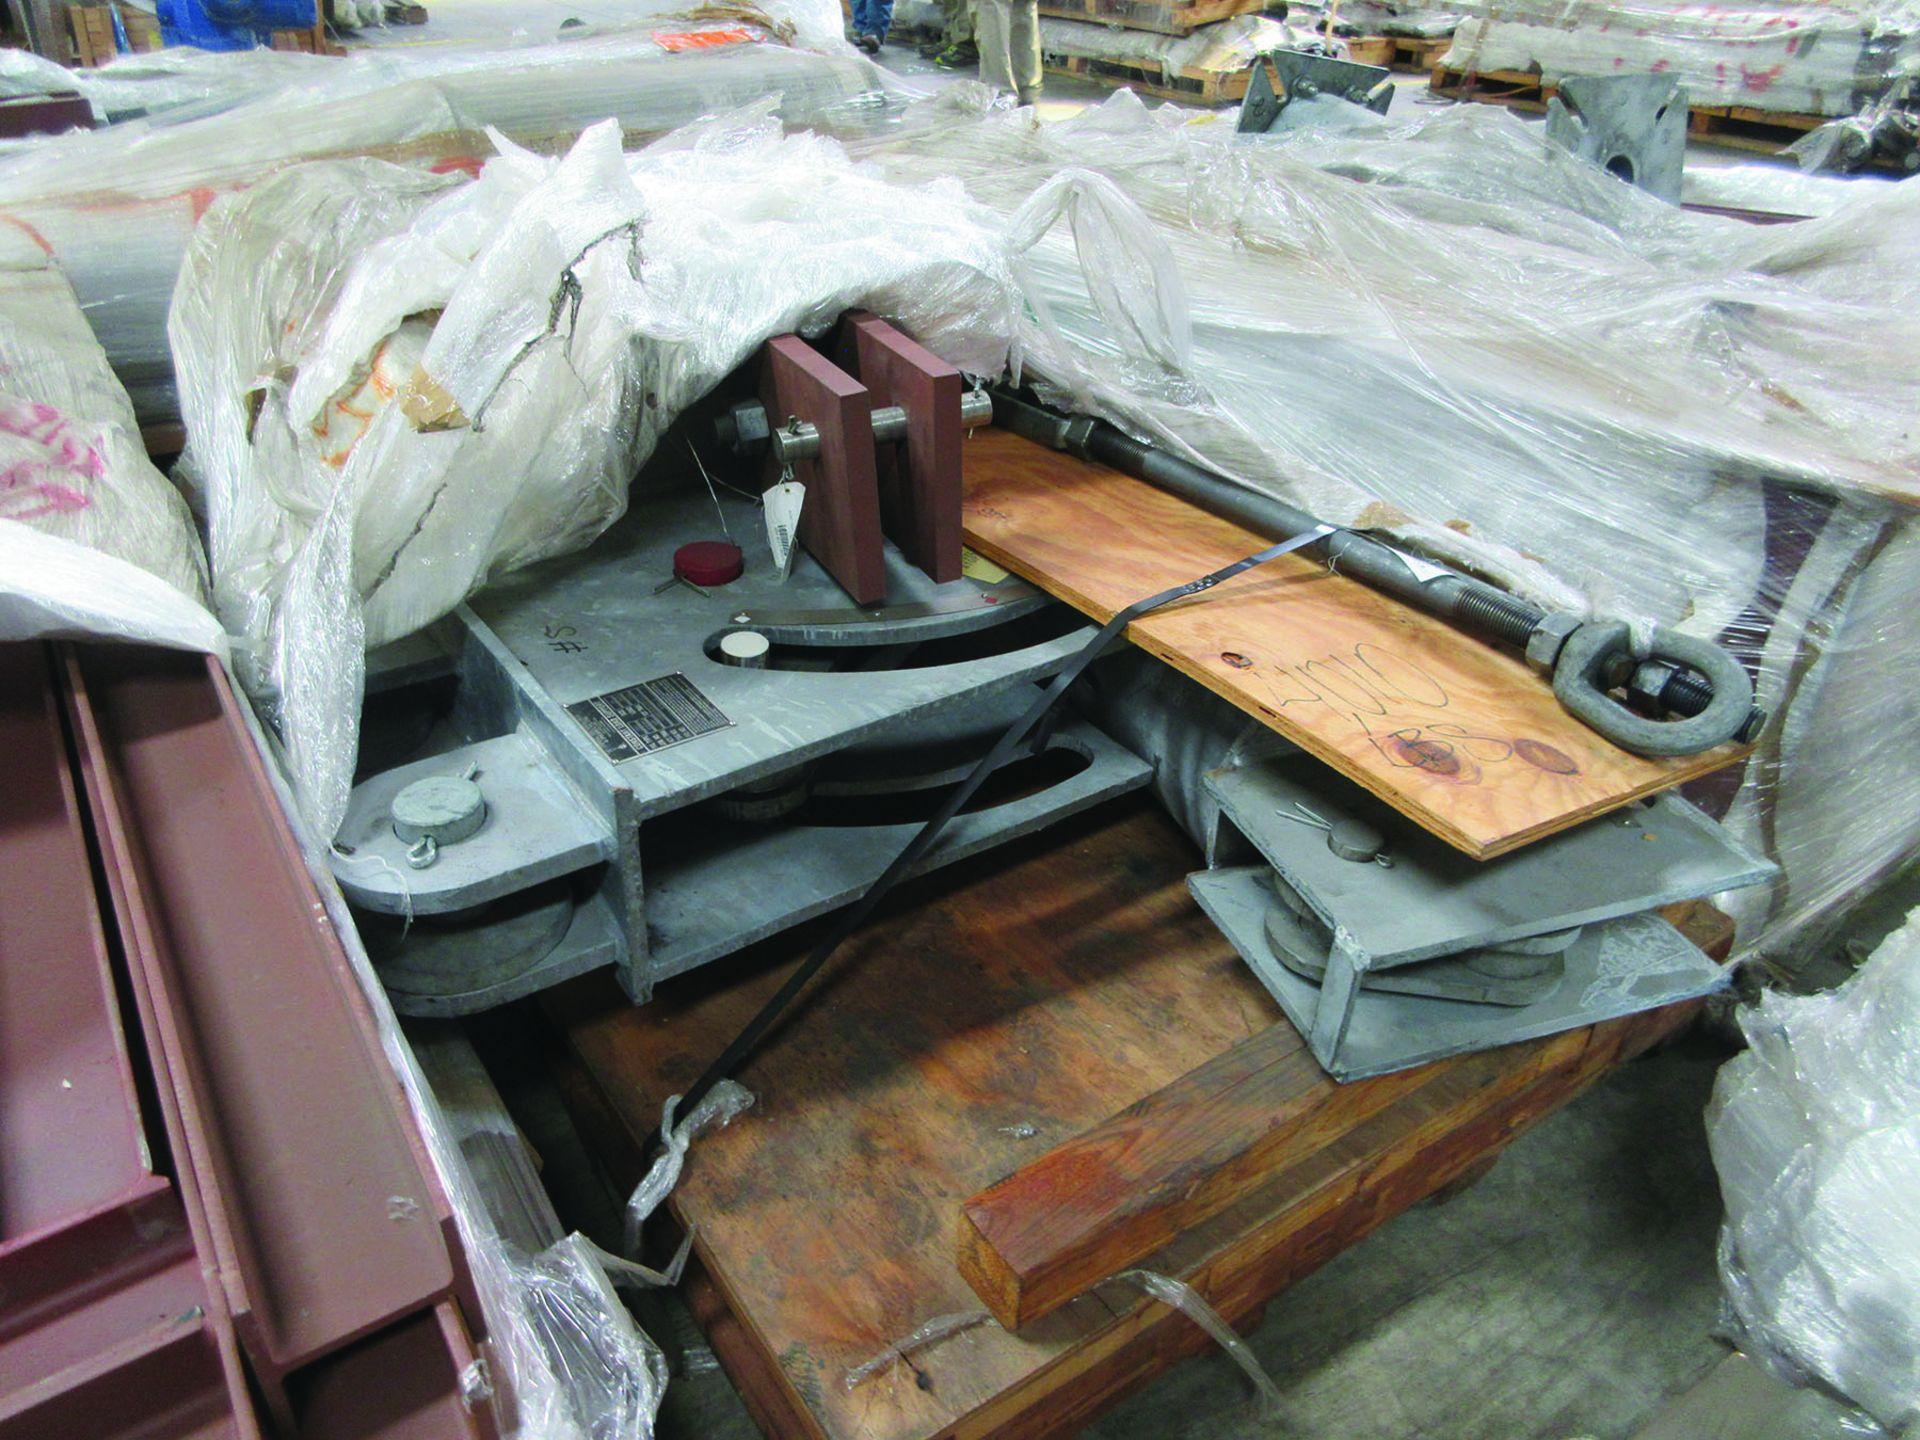 ASSORTED STEEL: PLATES, BEAMS, ROOF/SIDING SUPER RIB CLOSURES, BRACKETS, SPRING CANS, STEEL BRACING, - Image 13 of 16